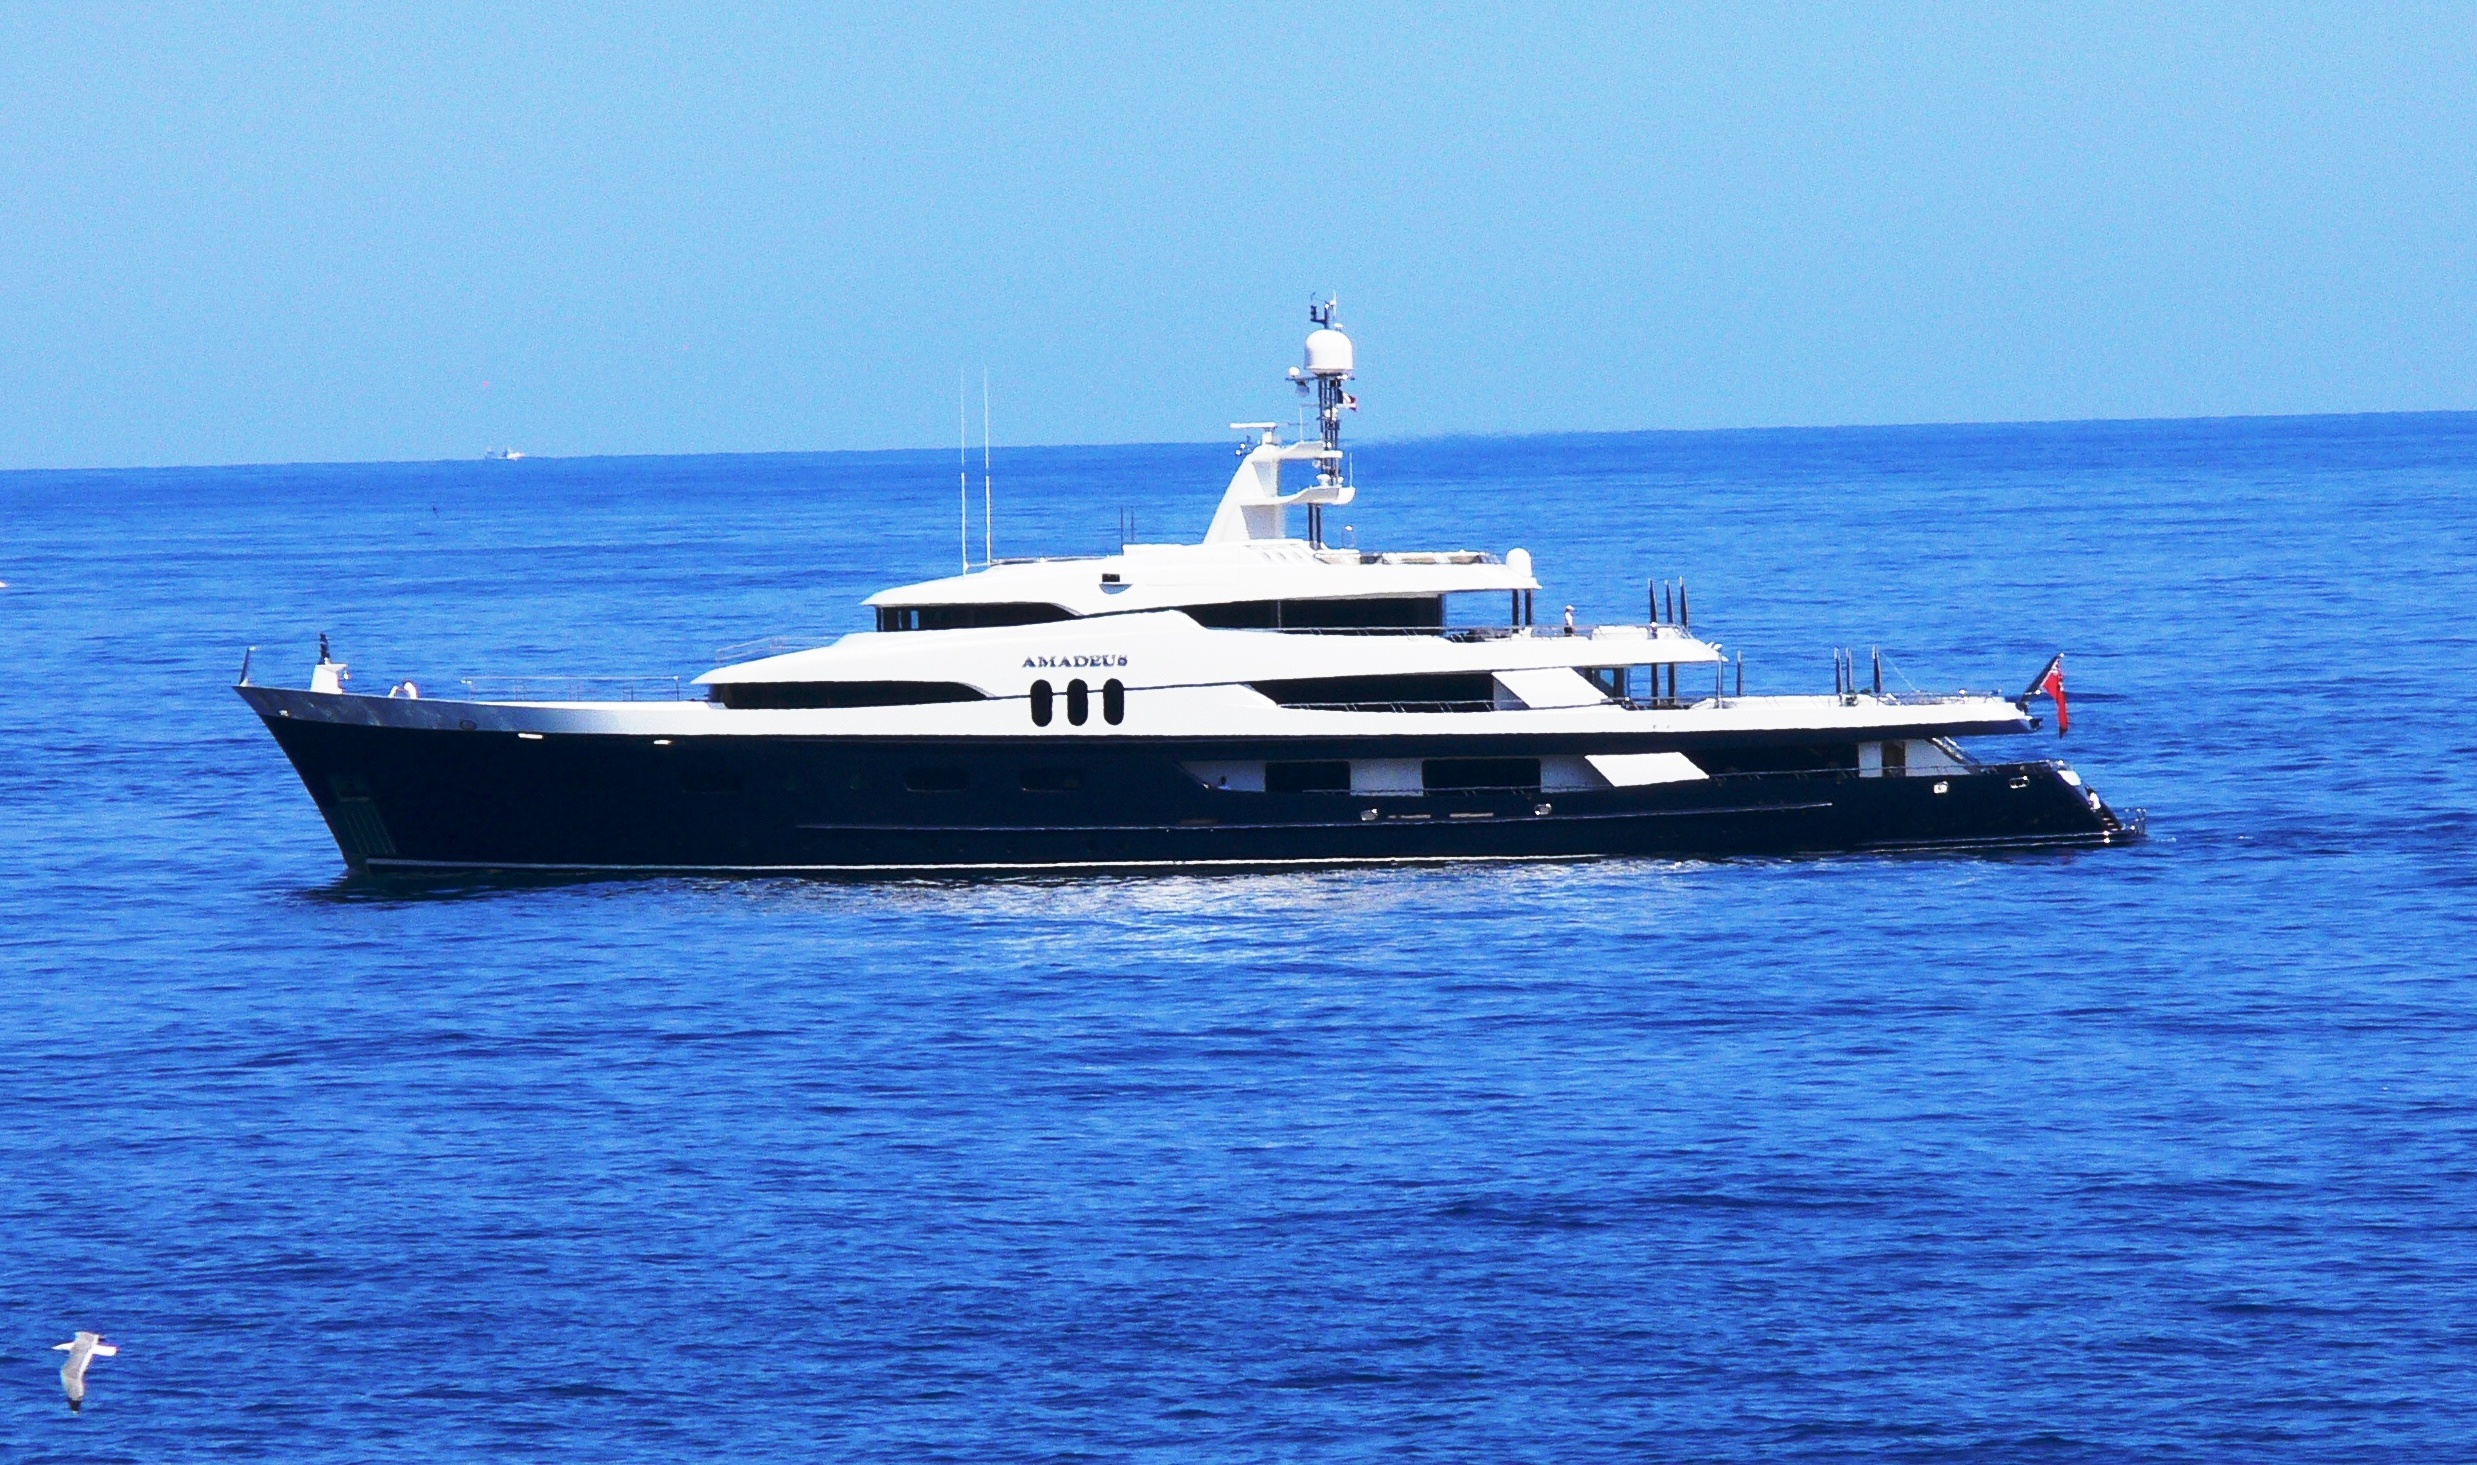 Yachting services companies